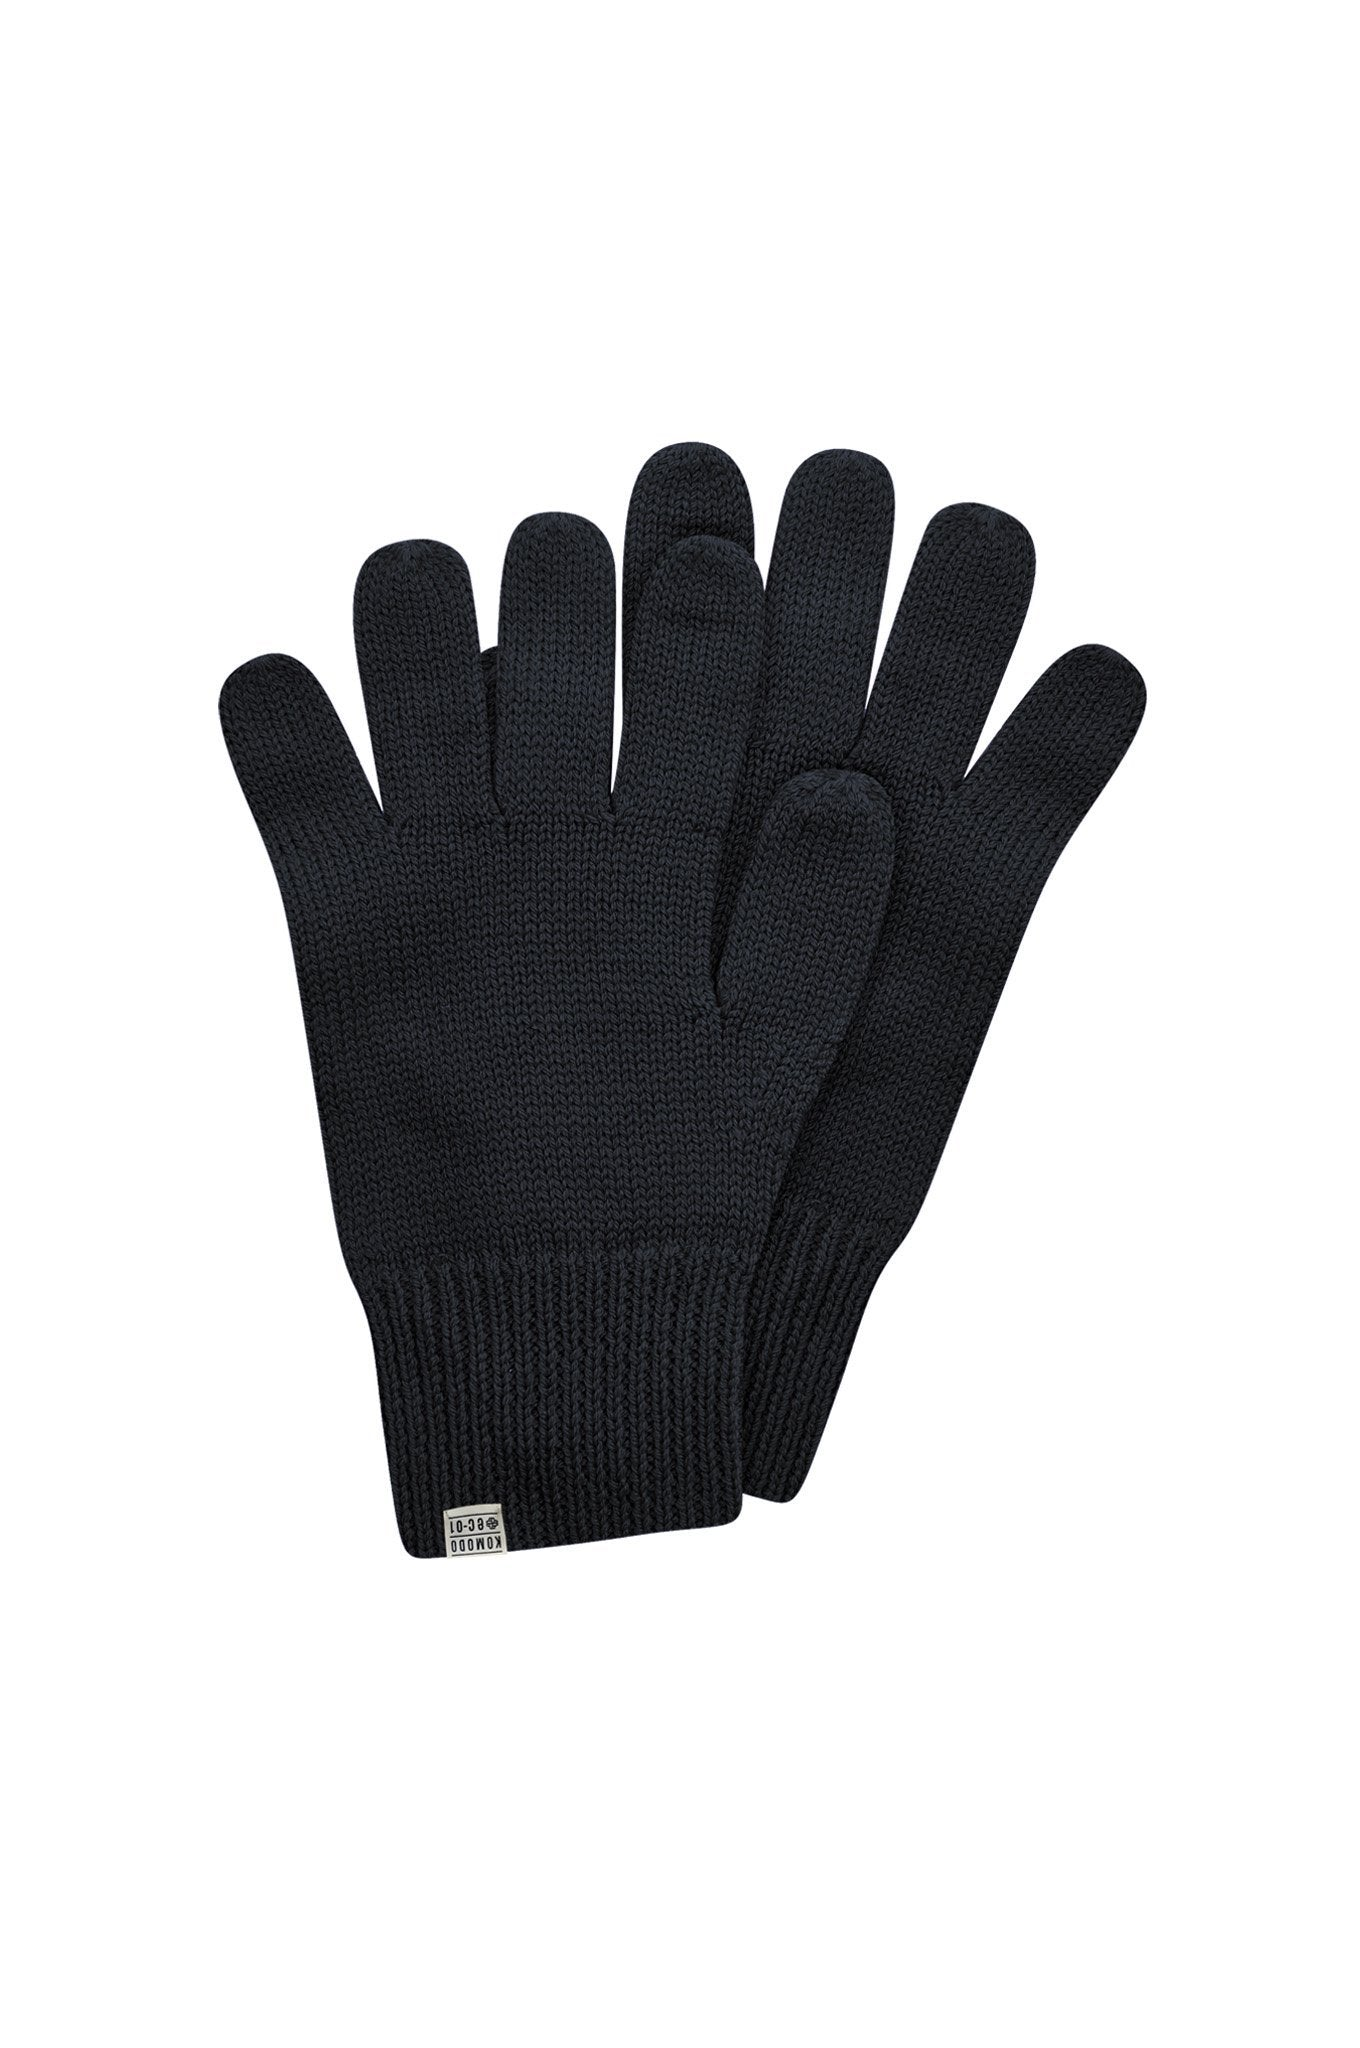 TORN Merino Wool Gloves Black - Komodo Fashion